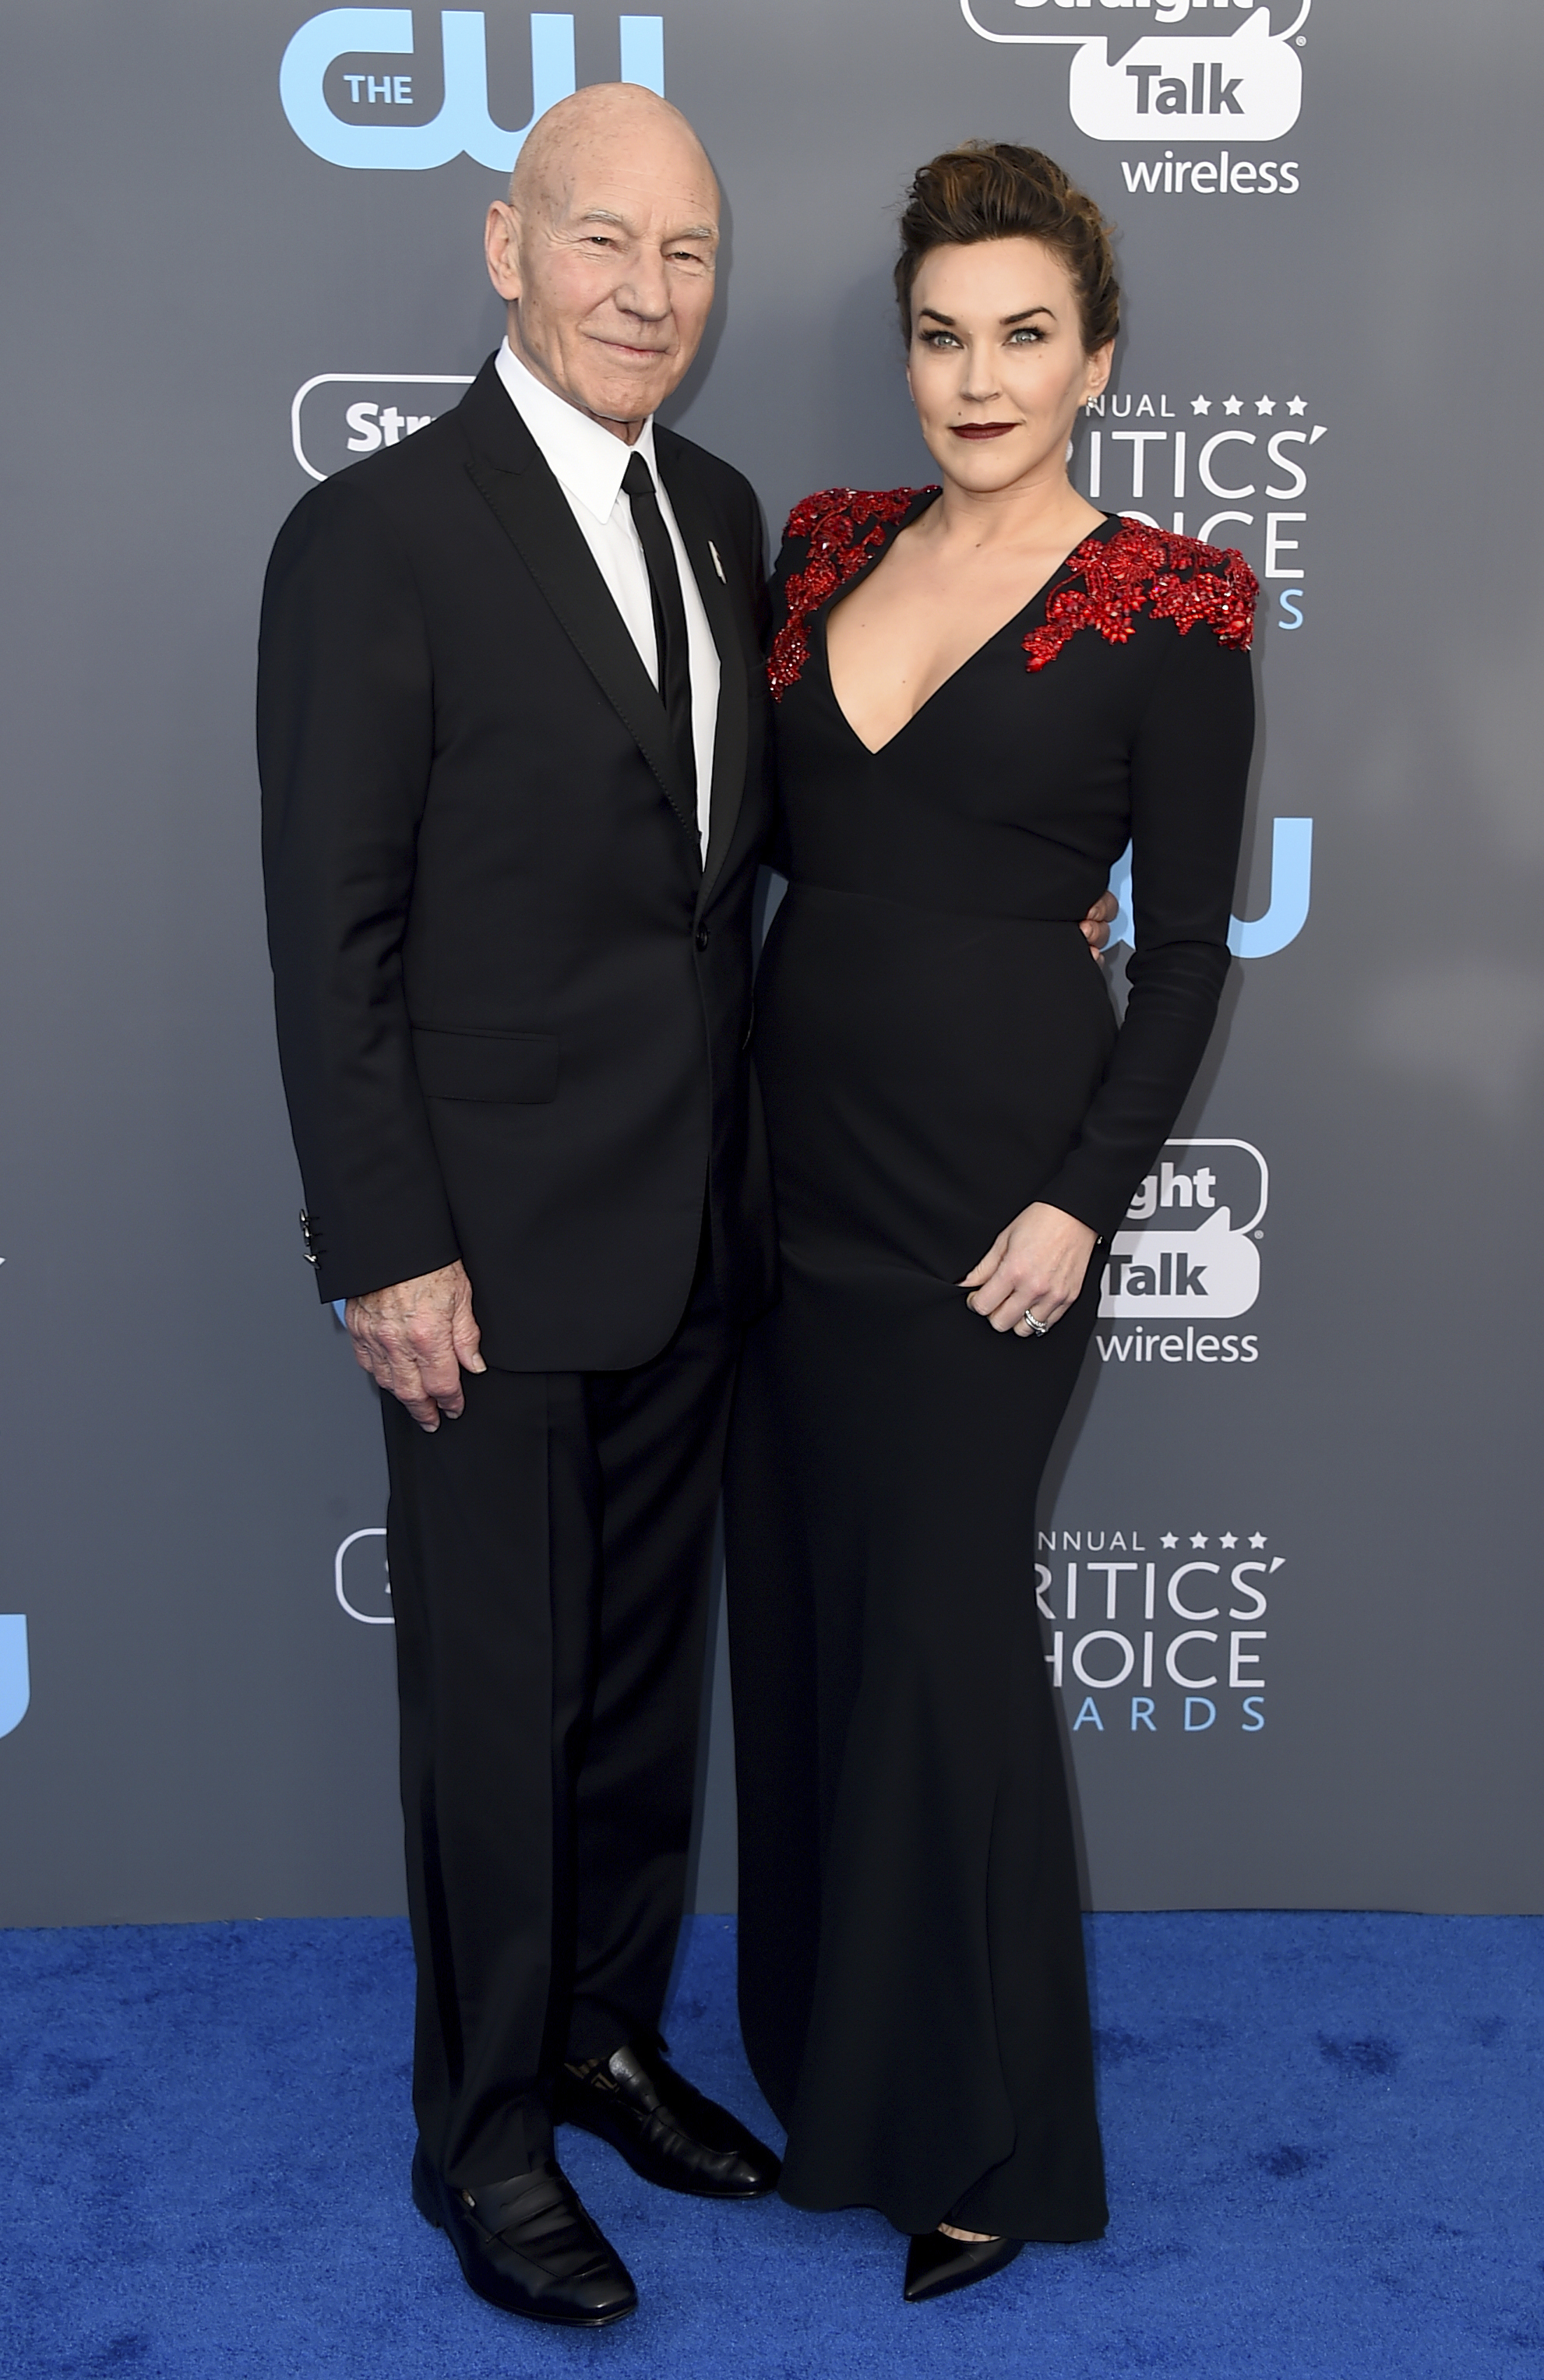 <div class='meta'><div class='origin-logo' data-origin='AP'></div><span class='caption-text' data-credit='Jordan Strauss/Invision/AP'>Patrick Stewart, left, and Sunny Ozell arrive at the 23rd annual Critics' Choice Awards at the Barker Hangar on Thursday, Jan. 11, 2018, in Santa Monica, Calif.</span></div>